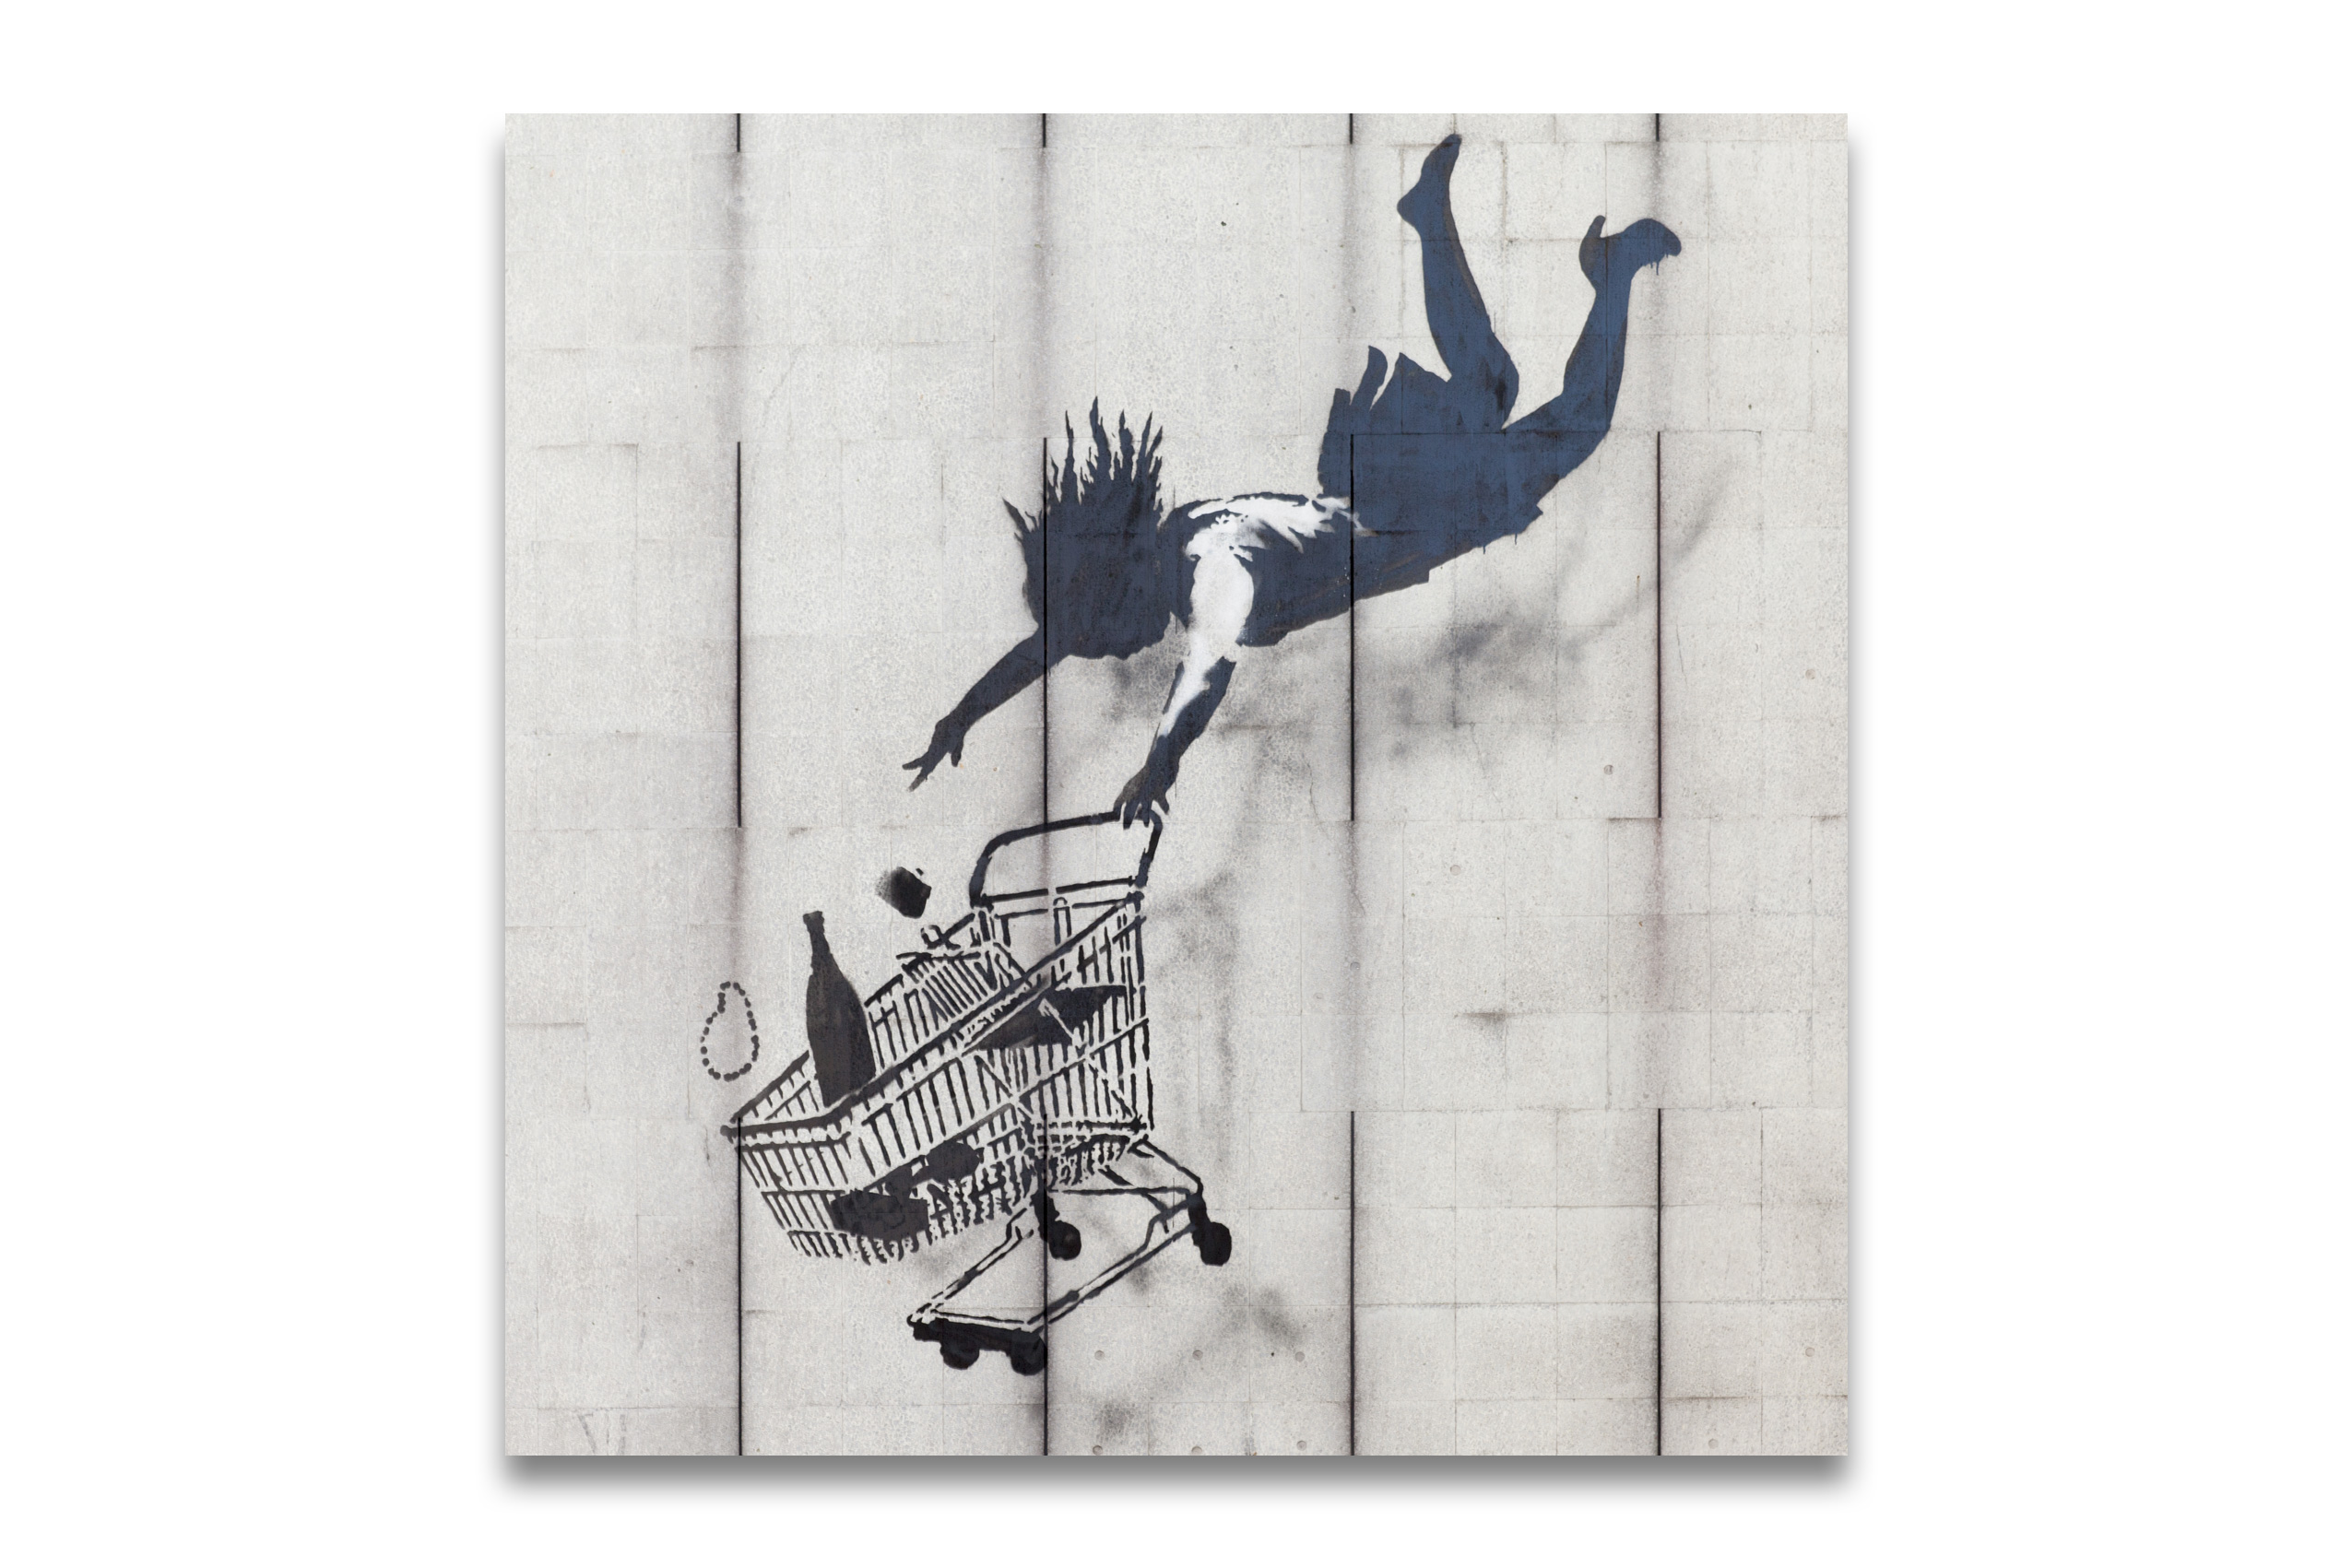 banksy kunstdruck auf leinwand till you drop bild. Black Bedroom Furniture Sets. Home Design Ideas